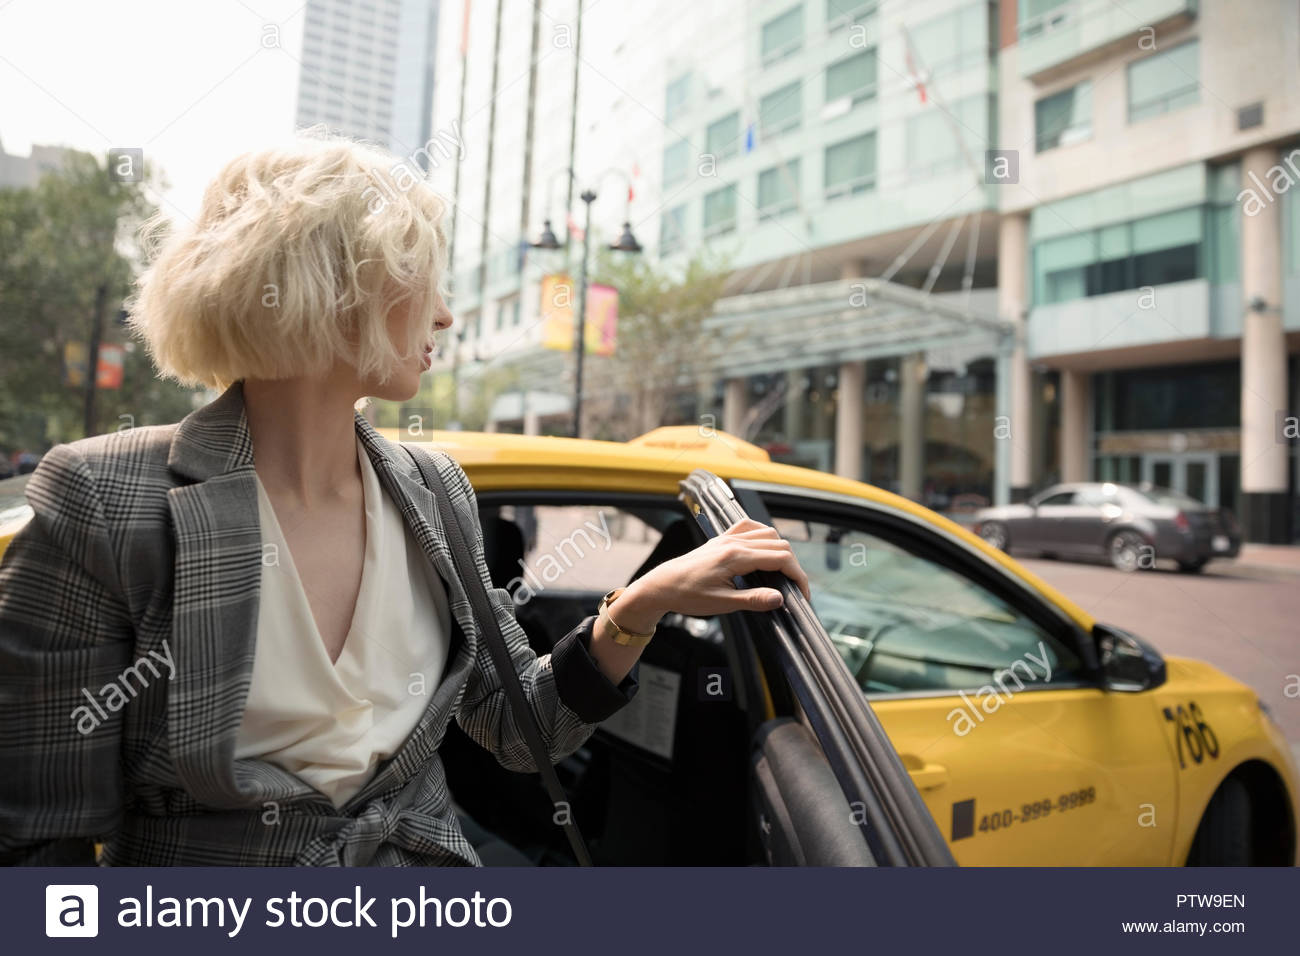 Young businesswoman getting out of taxi on urban street - Stock Image